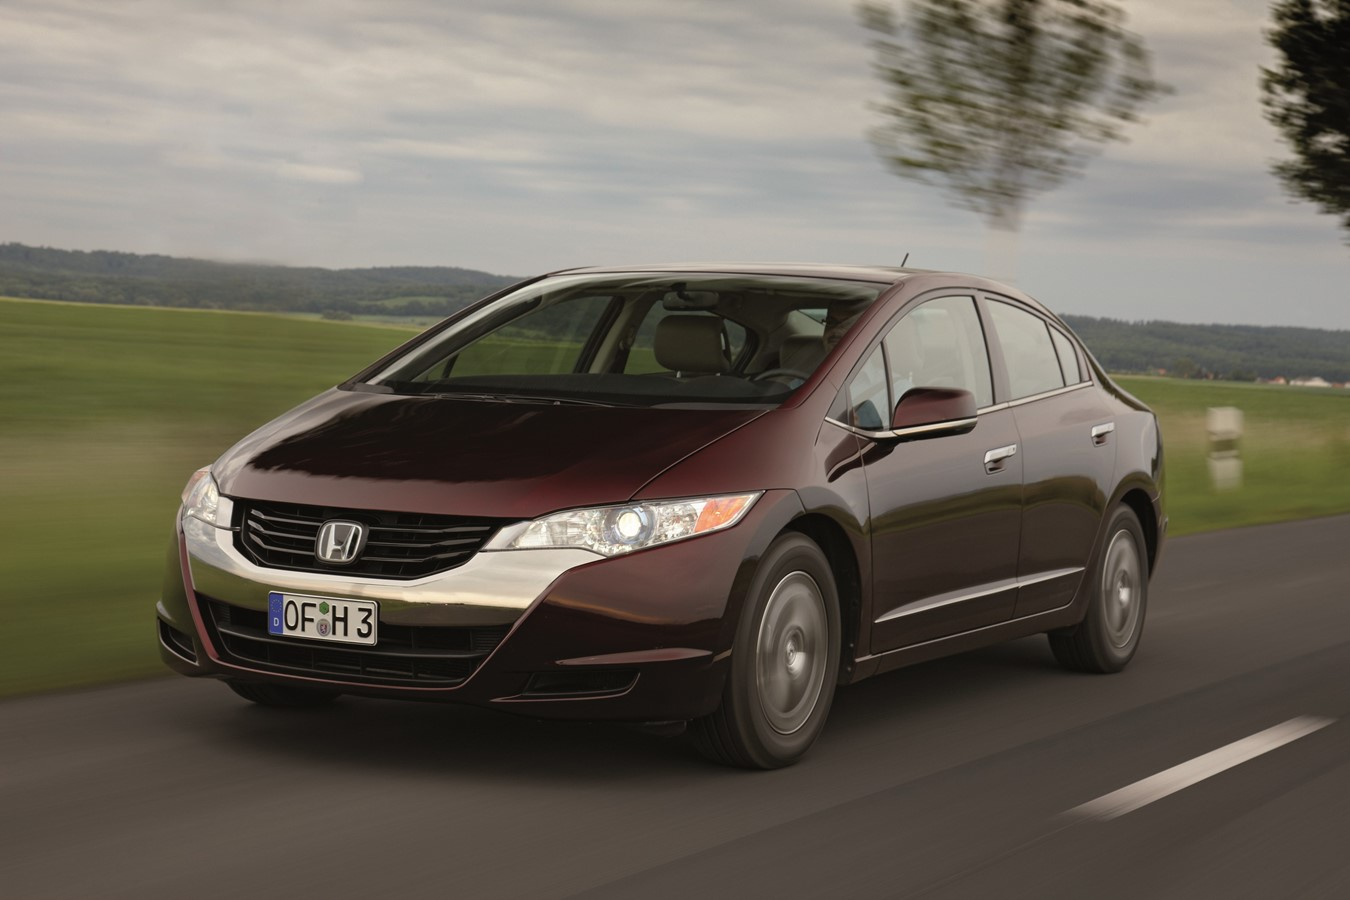 honda signs mou on market introduction of fuel cell vehicles in nordic countries. Black Bedroom Furniture Sets. Home Design Ideas